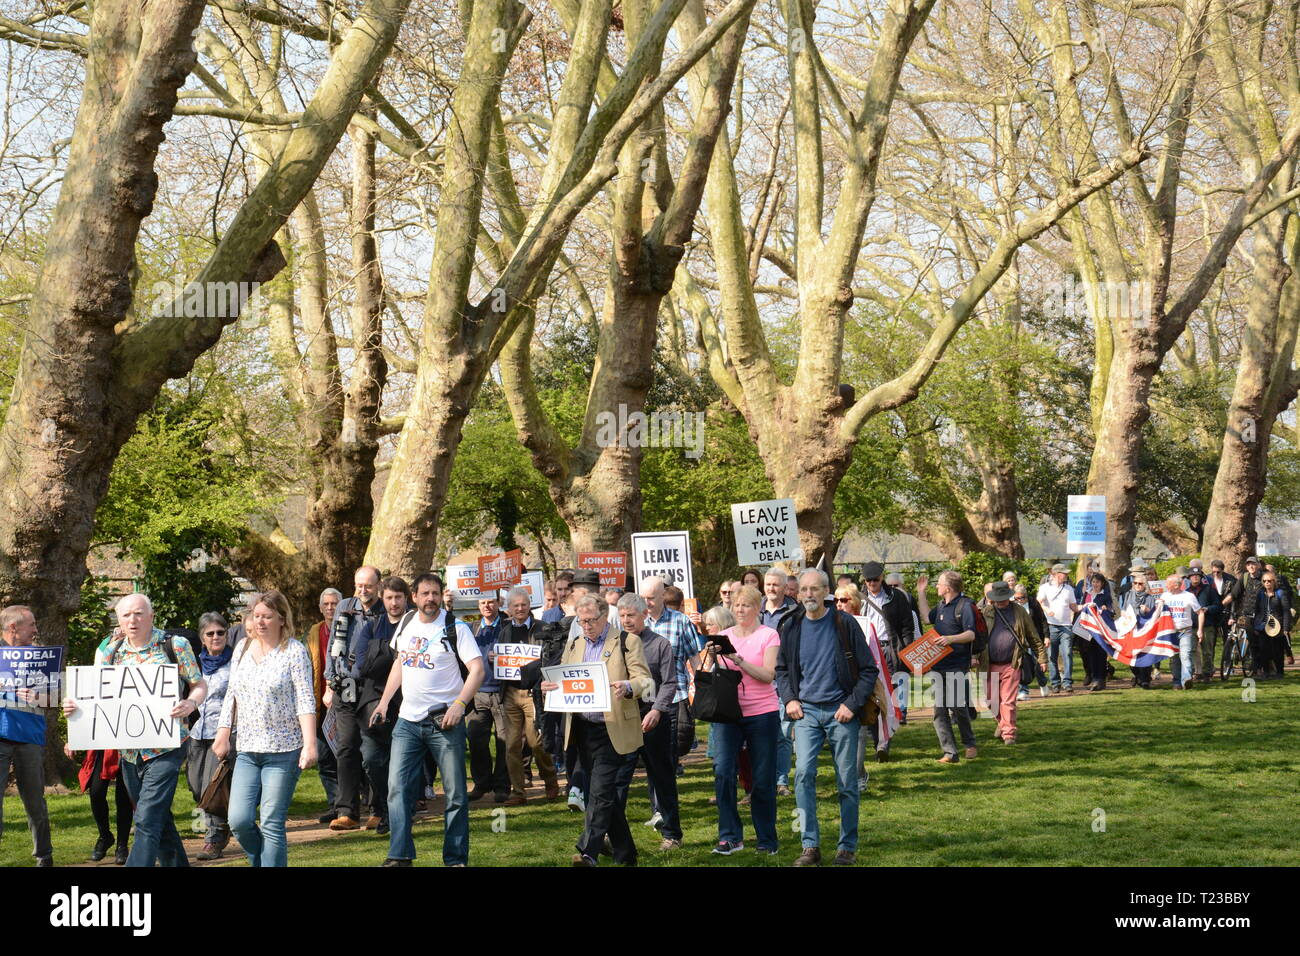 Leave Means Leave Rally on the day the UK was supposed to leave the EU - 29th March 2019 - Stock Image